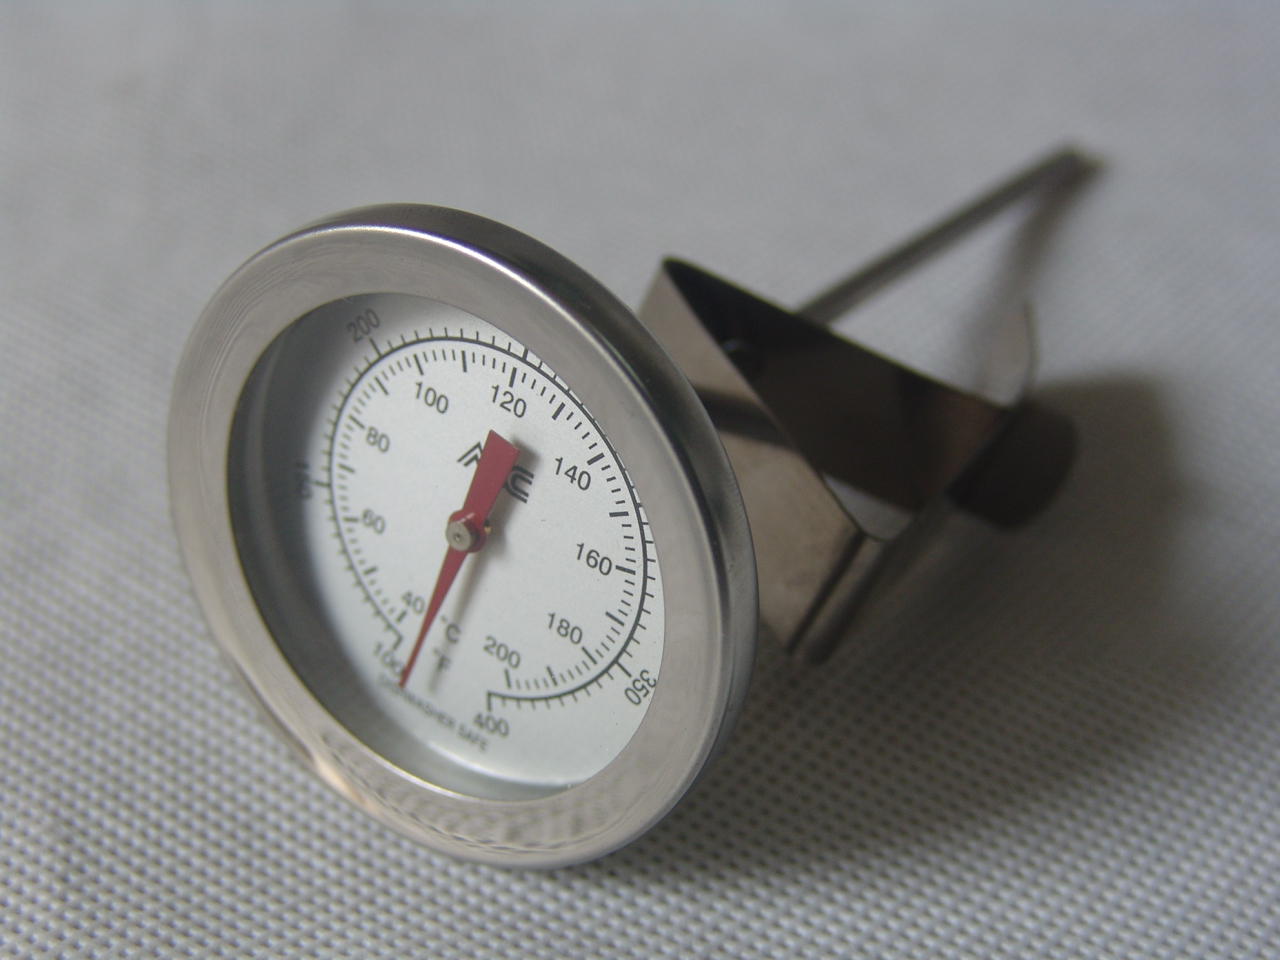 Deep Fry / Candy Thermometer, 100F to 400F